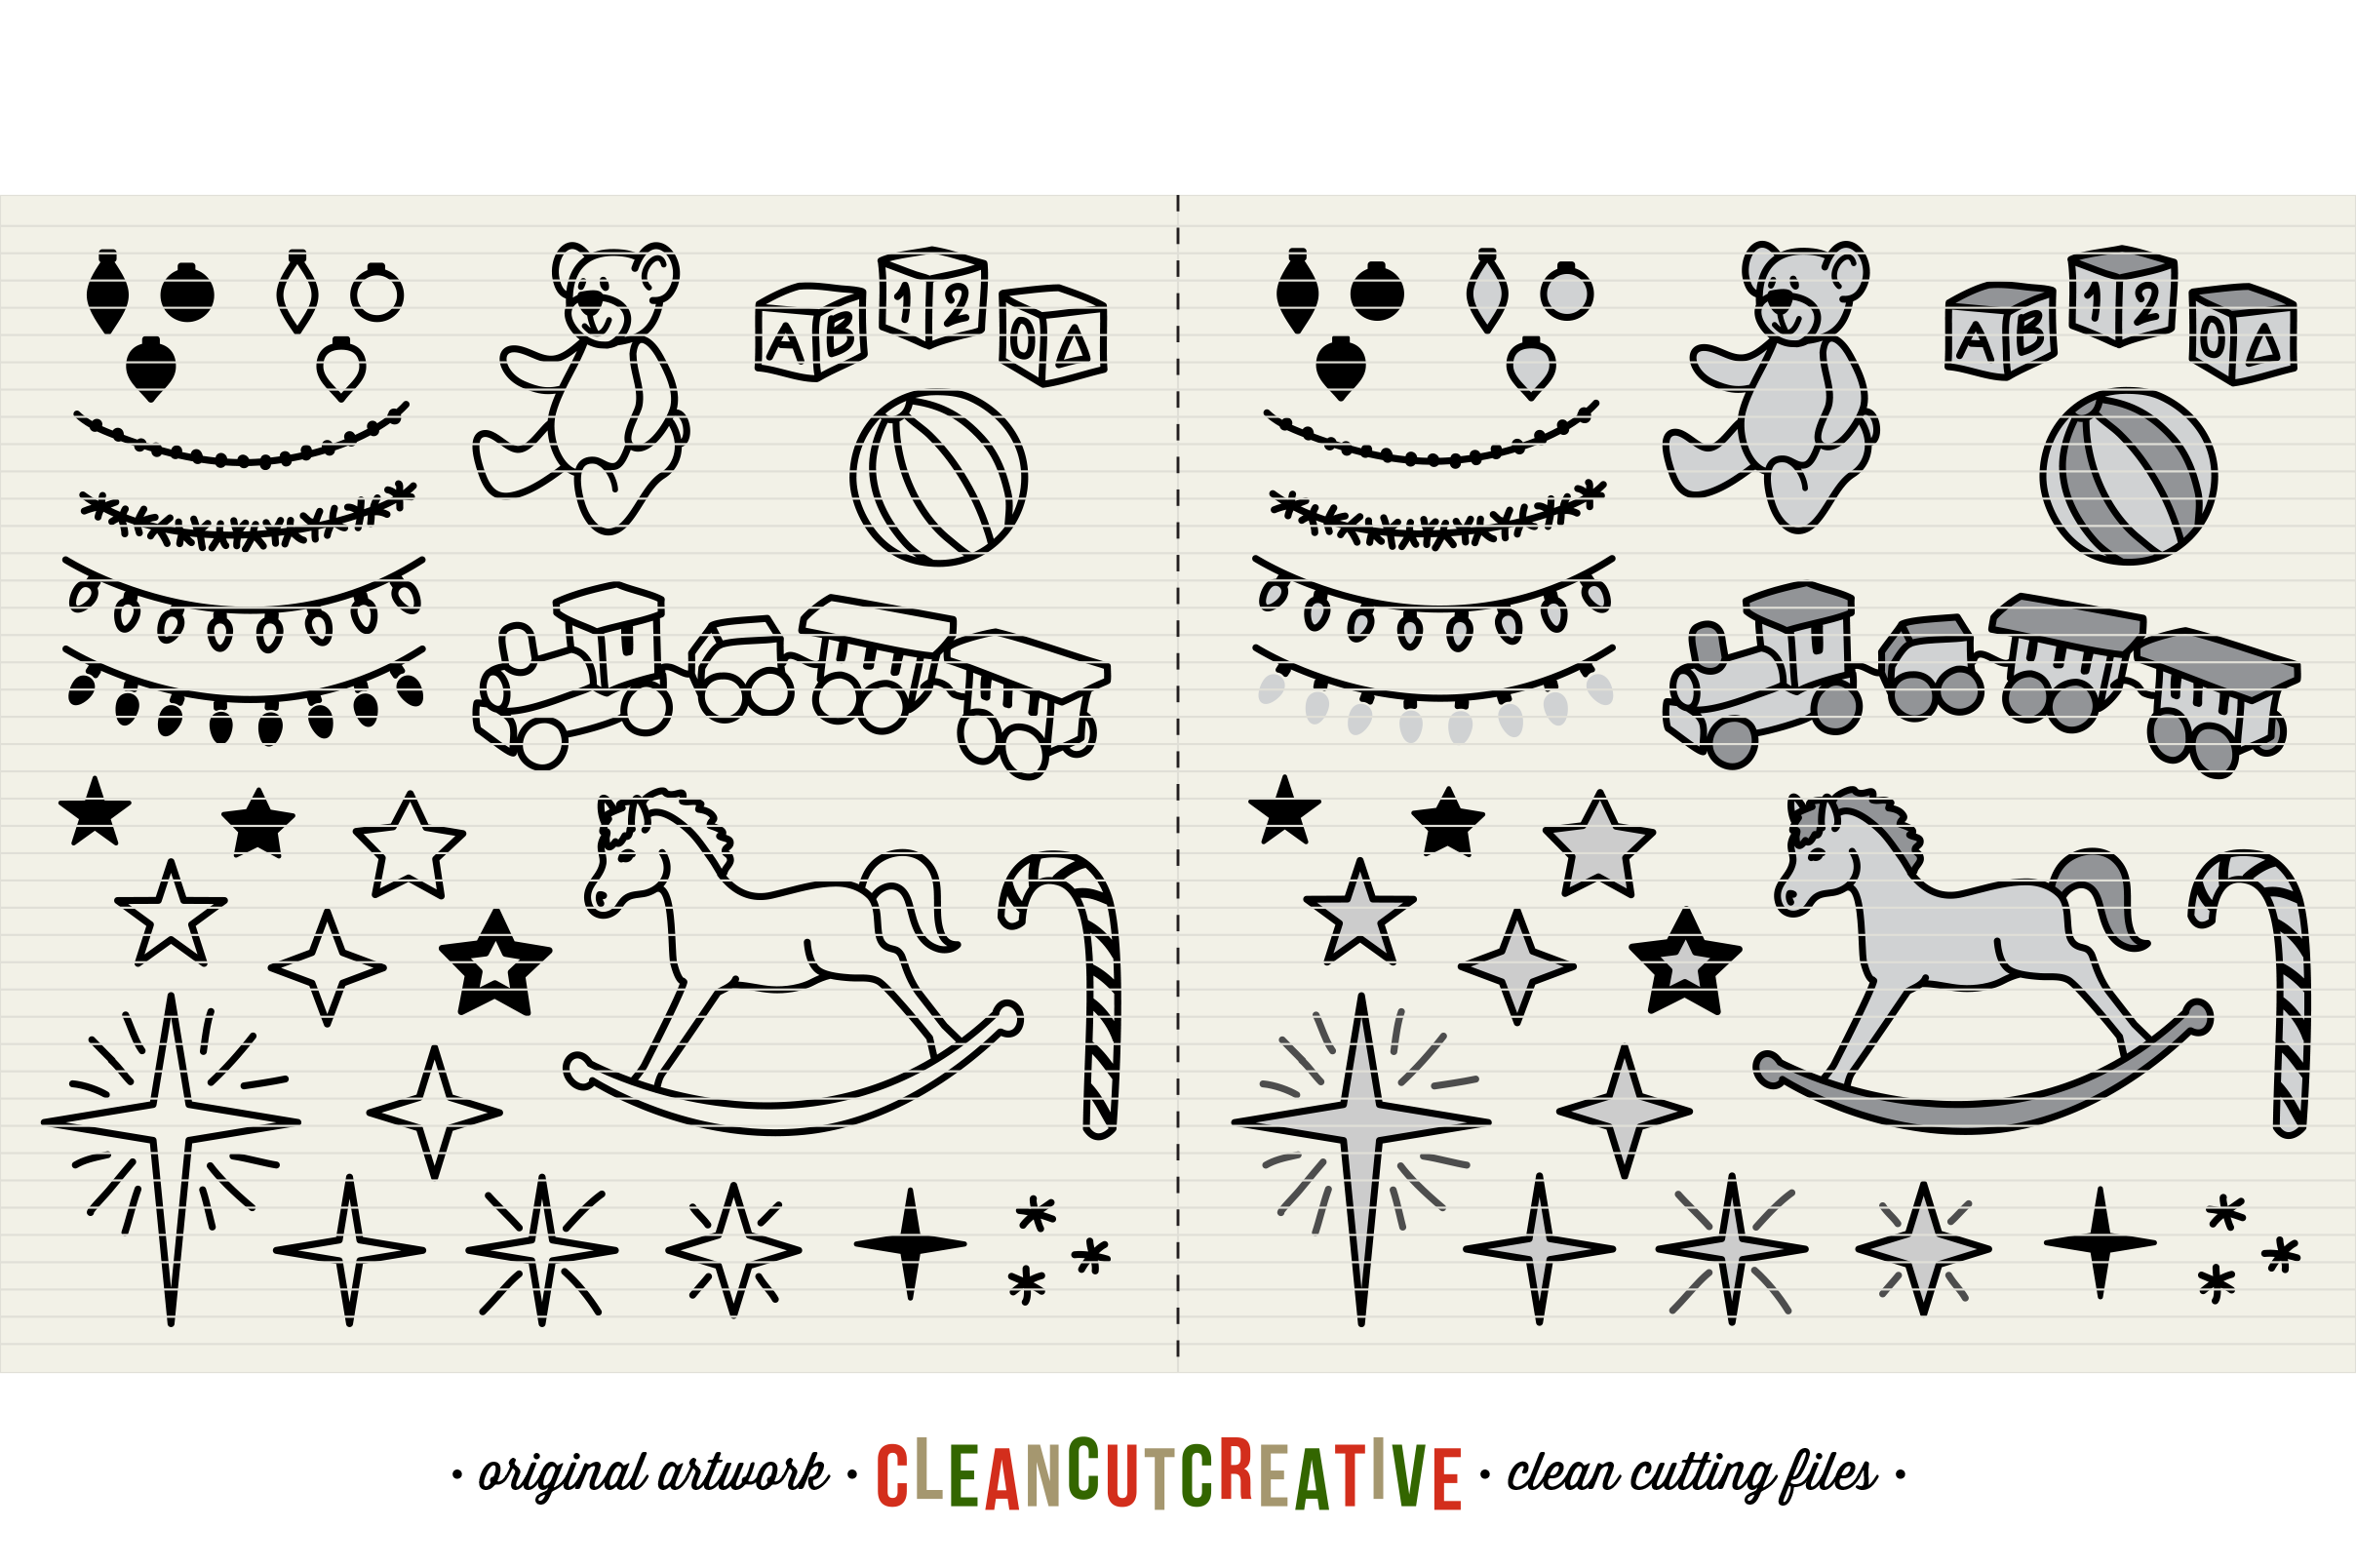 The Crafters Christmas Toolkit - 150+ Christmas Design Elements - SVG DXF EPS - Cricut & Silhouette - clean cutting files example image 7